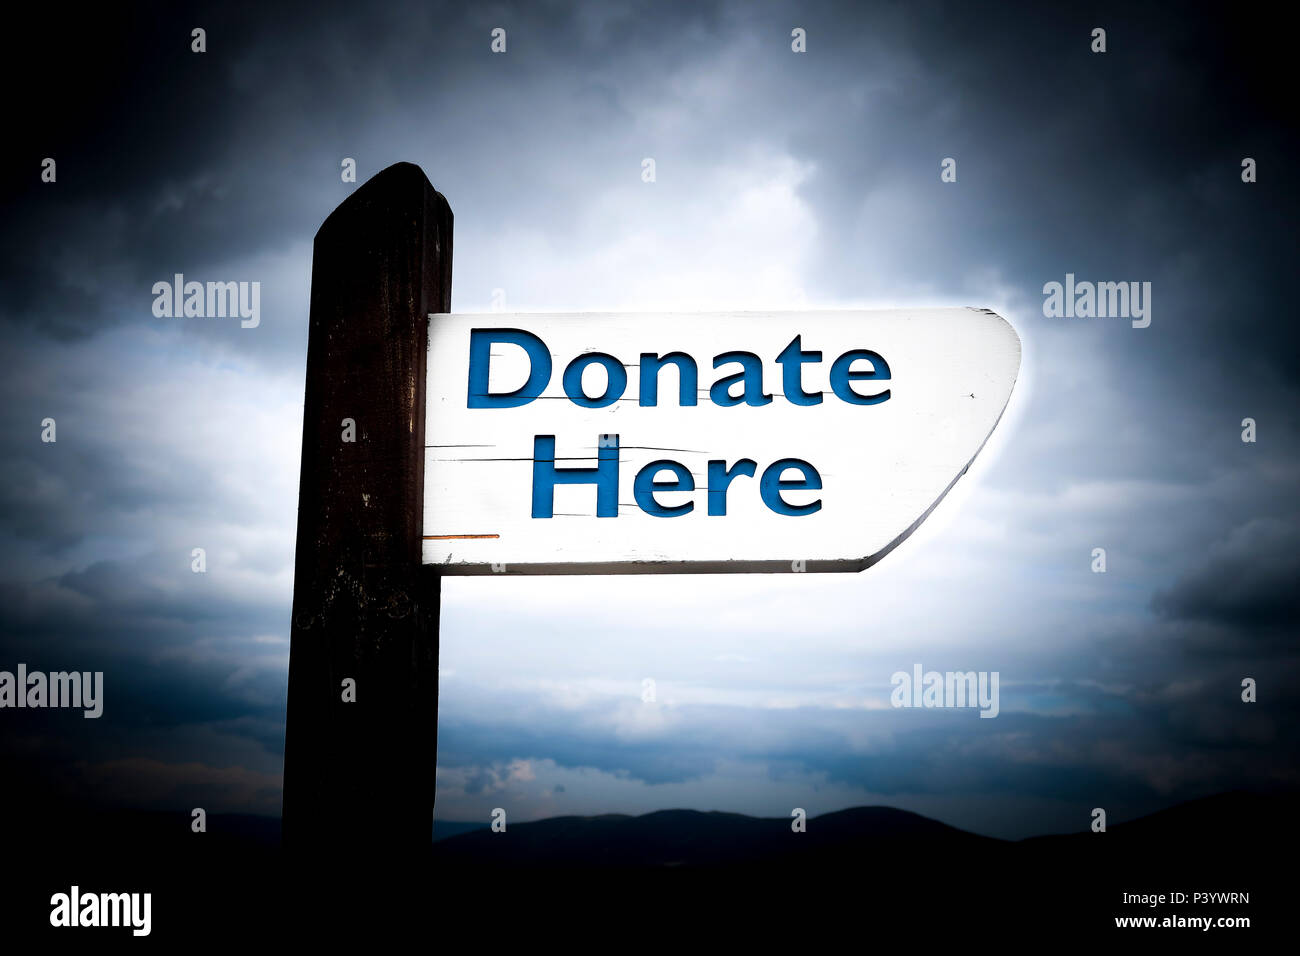 Donate here sign - Stock Image